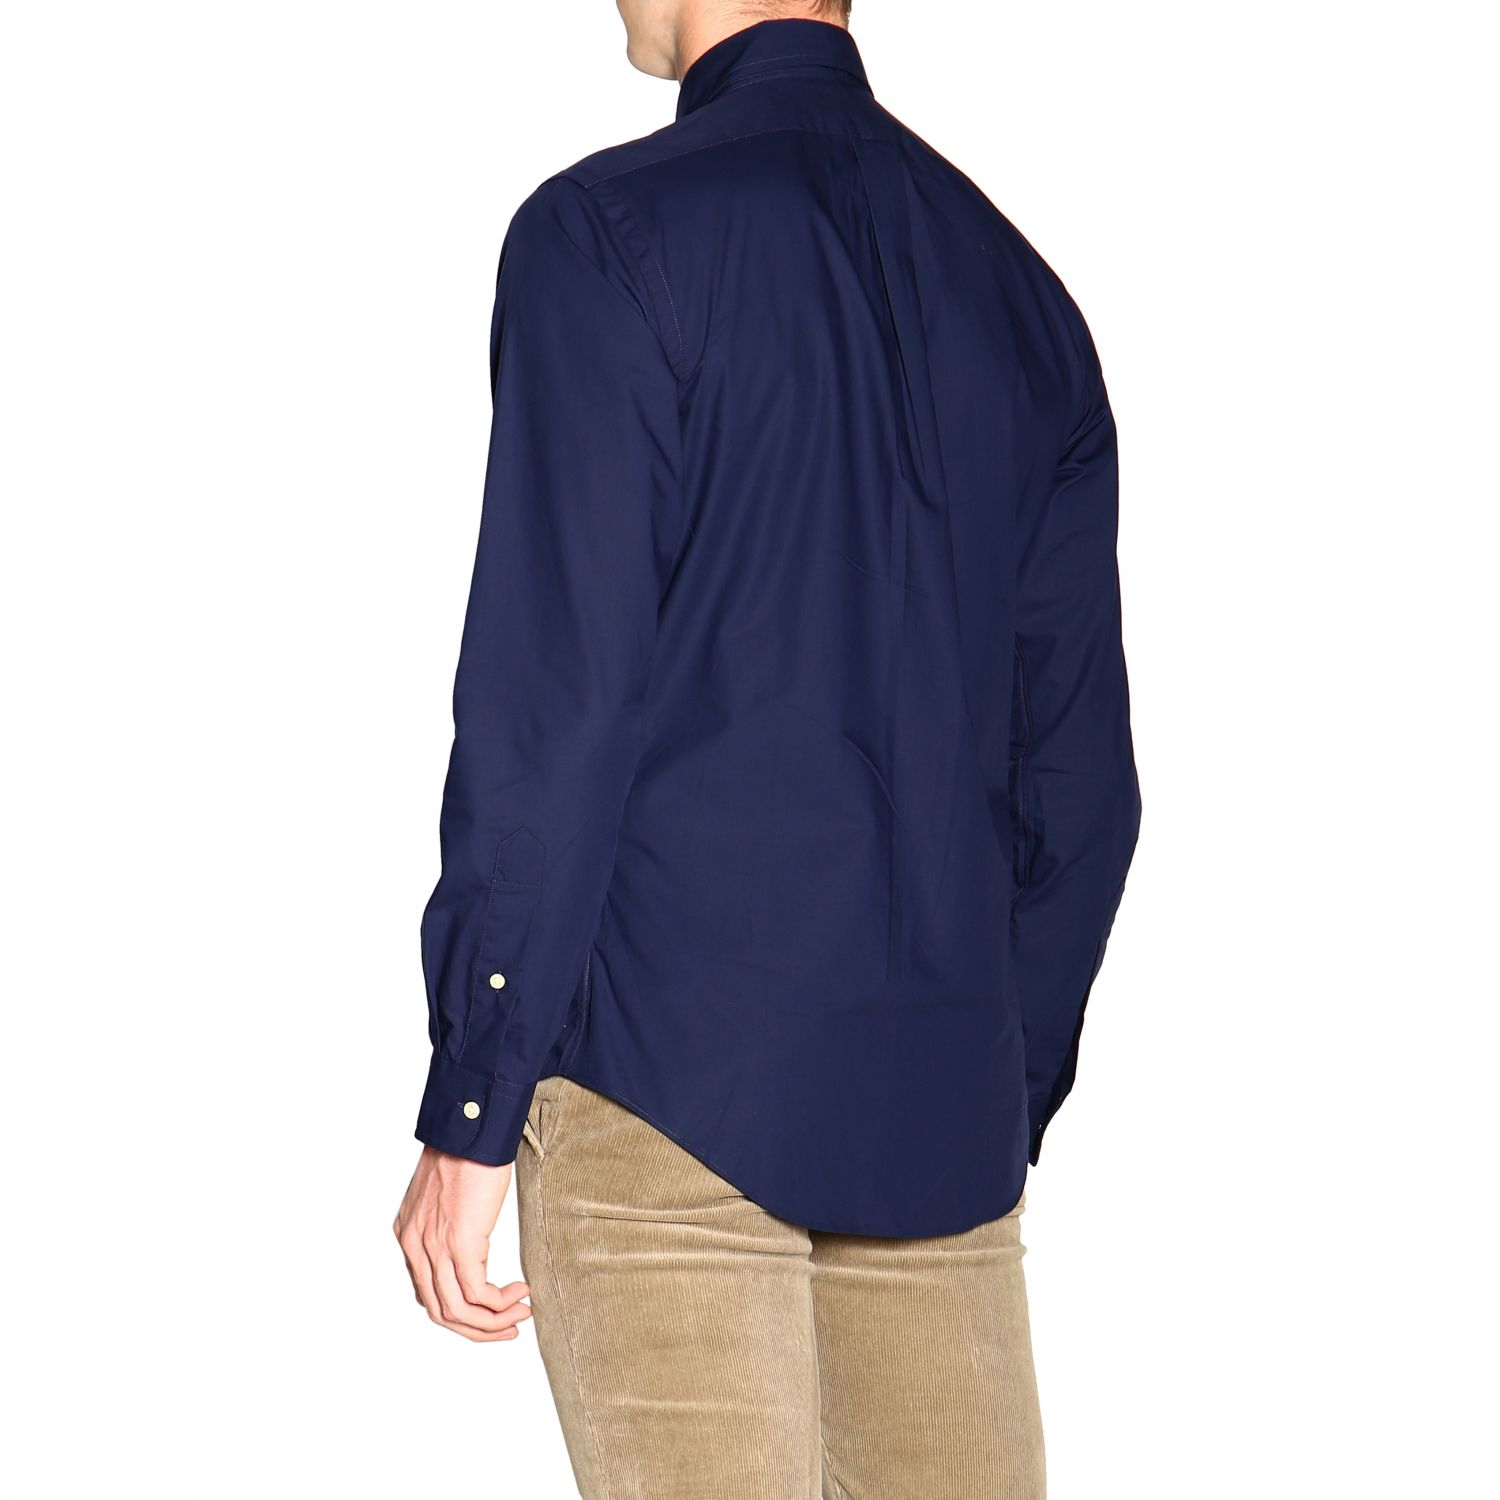 Natural stretch custom fit shirt with button down collar and Polo Ralph Lauren logo blue 3